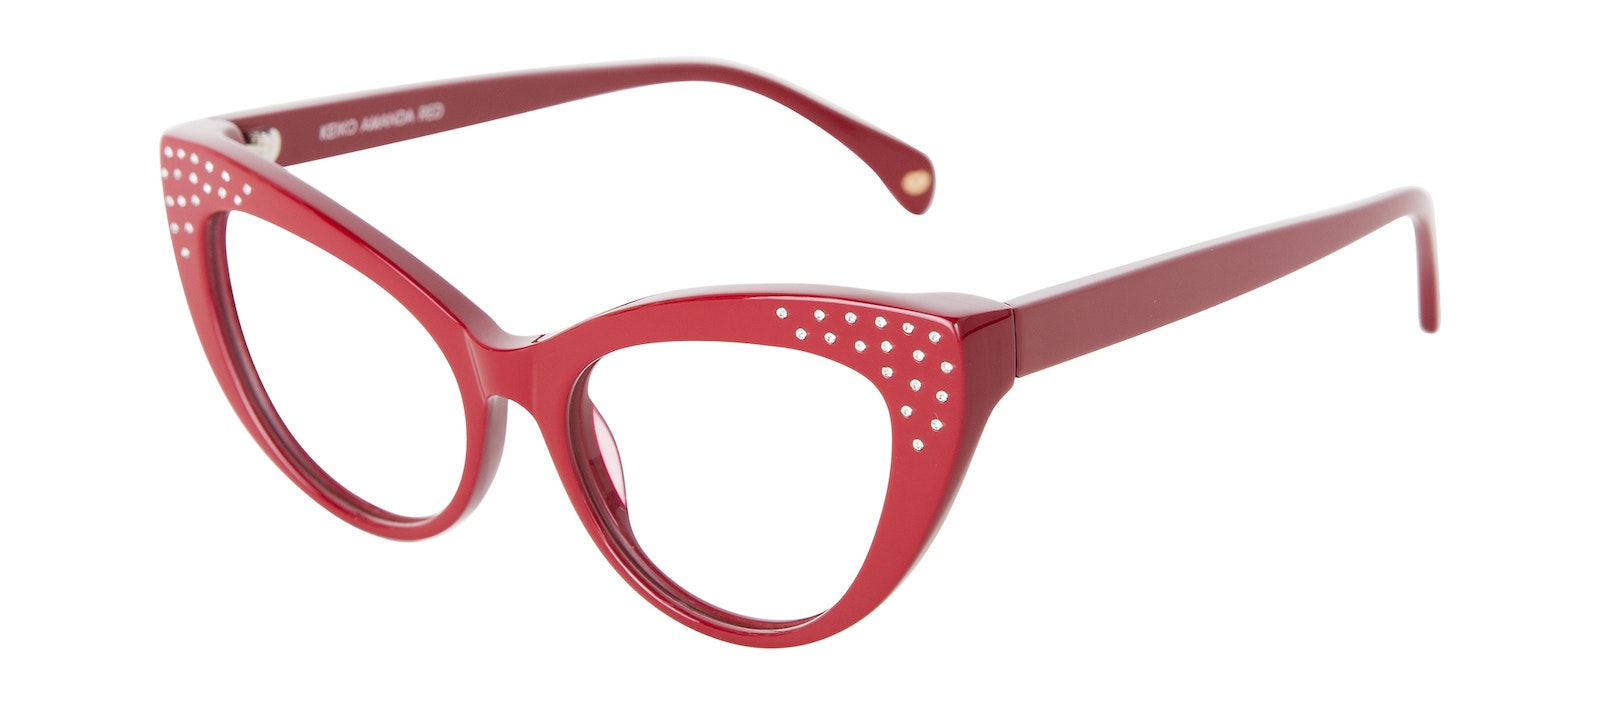 Affordable Fashion Glasses Cat Eye Daring Cateye Eyeglasses Women Keiko Amanda Red Tilt